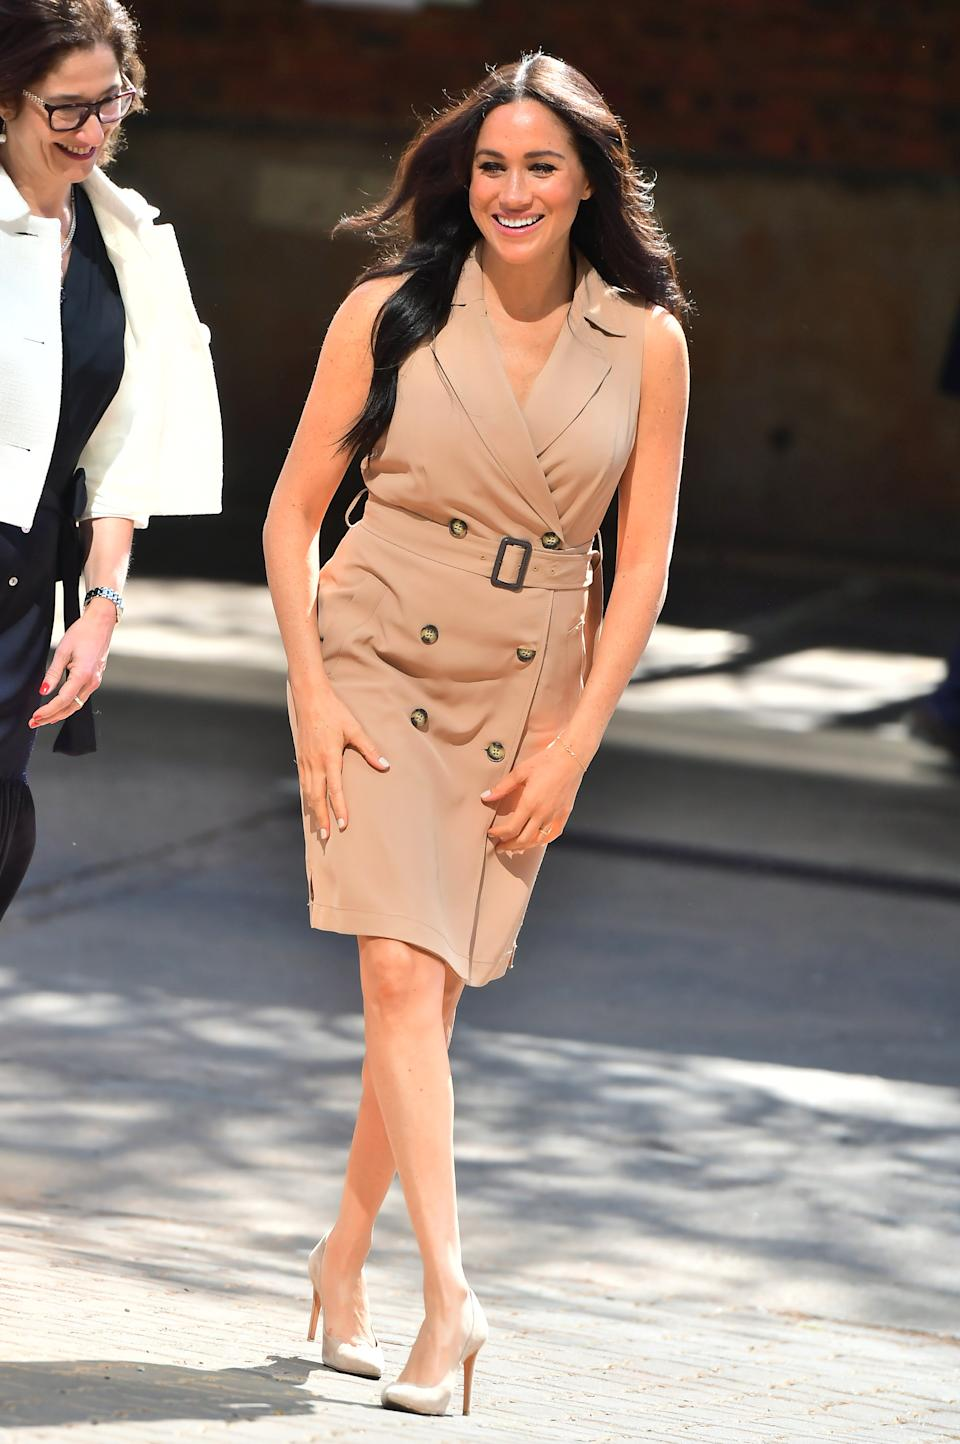 """During a morning in Johannesburg, Meghan wore a tonal tan took that featured a <a href=""""https://fave.co/2ndQaQZ"""" rel=""""nofollow noopener"""" target=""""_blank"""" data-ylk=""""slk:£95 trench dress by Banana Republic"""" class=""""link rapid-noclick-resp"""">£95 trench dress by Banana Republic</a>. She paired it with Stuart Weitzman shoes and dainty gold jewellery. <em>[Photo: Getty]</em>"""